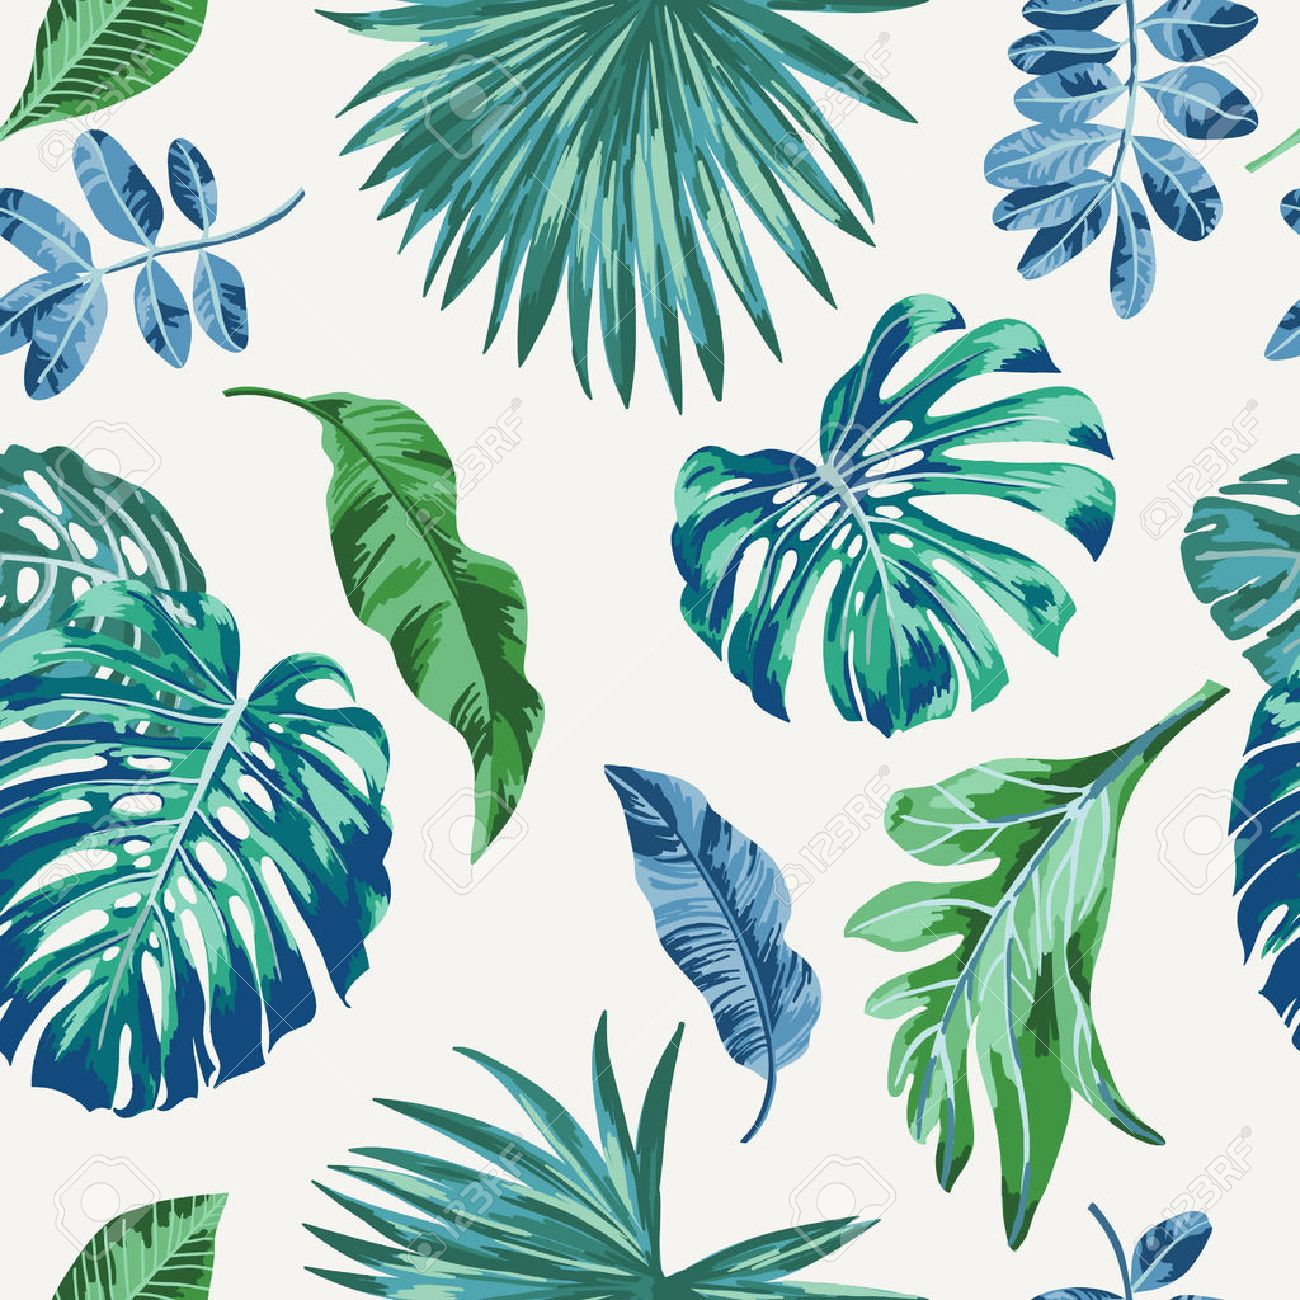 Seamless Exotic Pattern With Tropical Leaves Vector Illustration Royalty Free Cliparts Vectors And Stock Illustration Image 56799867 Find images of tropical leaves. seamless exotic pattern with tropical leaves vector illustration